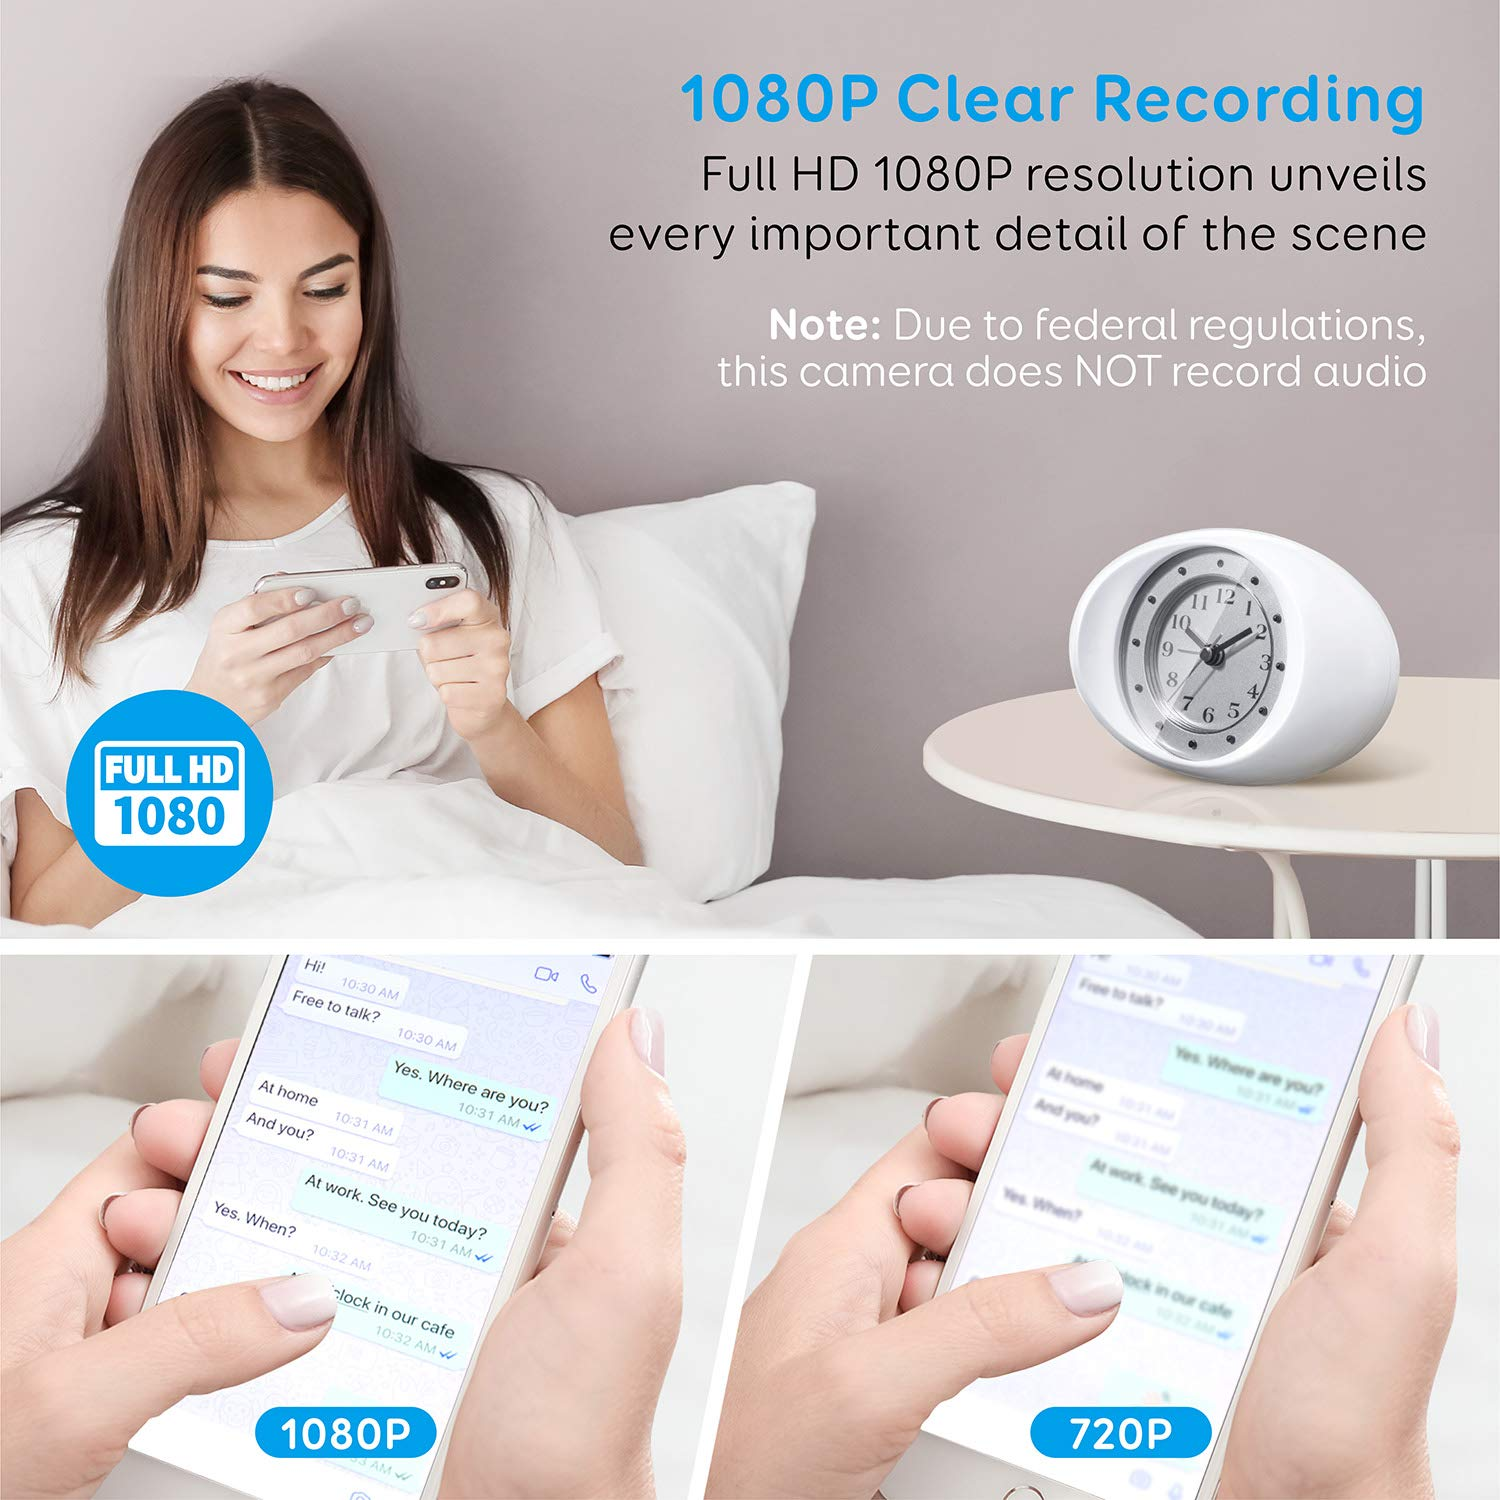 Omples Hidden Camera Spy Camera Wireless Security Nanny Cam with 1080P Full HD, WiFi, Night Vision, Motion Detection, Cell Phone App, No Sound Recording